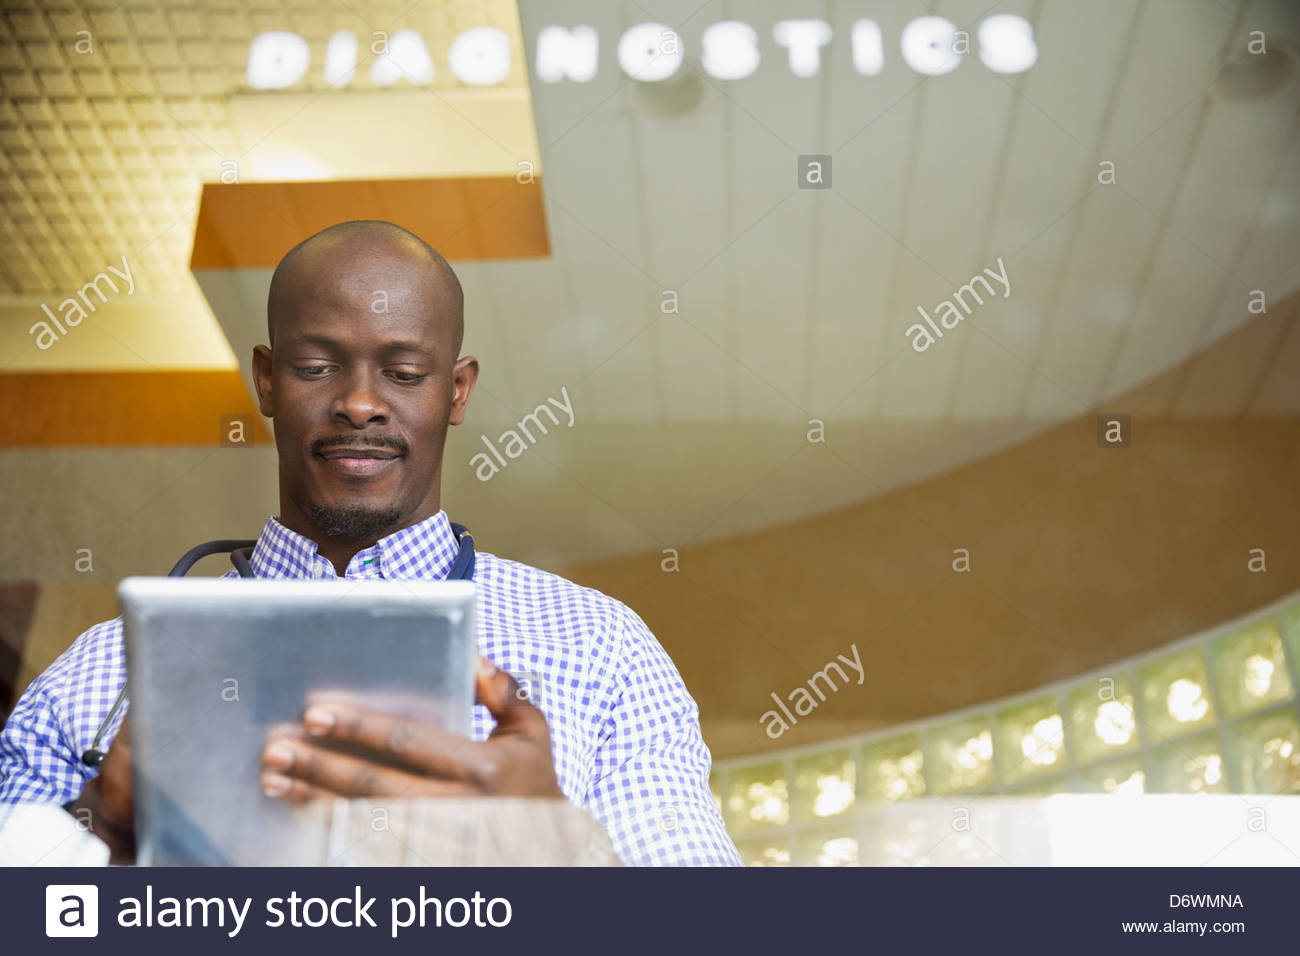 Mid adult male doctor using digital tablet in clinic - Stock Image